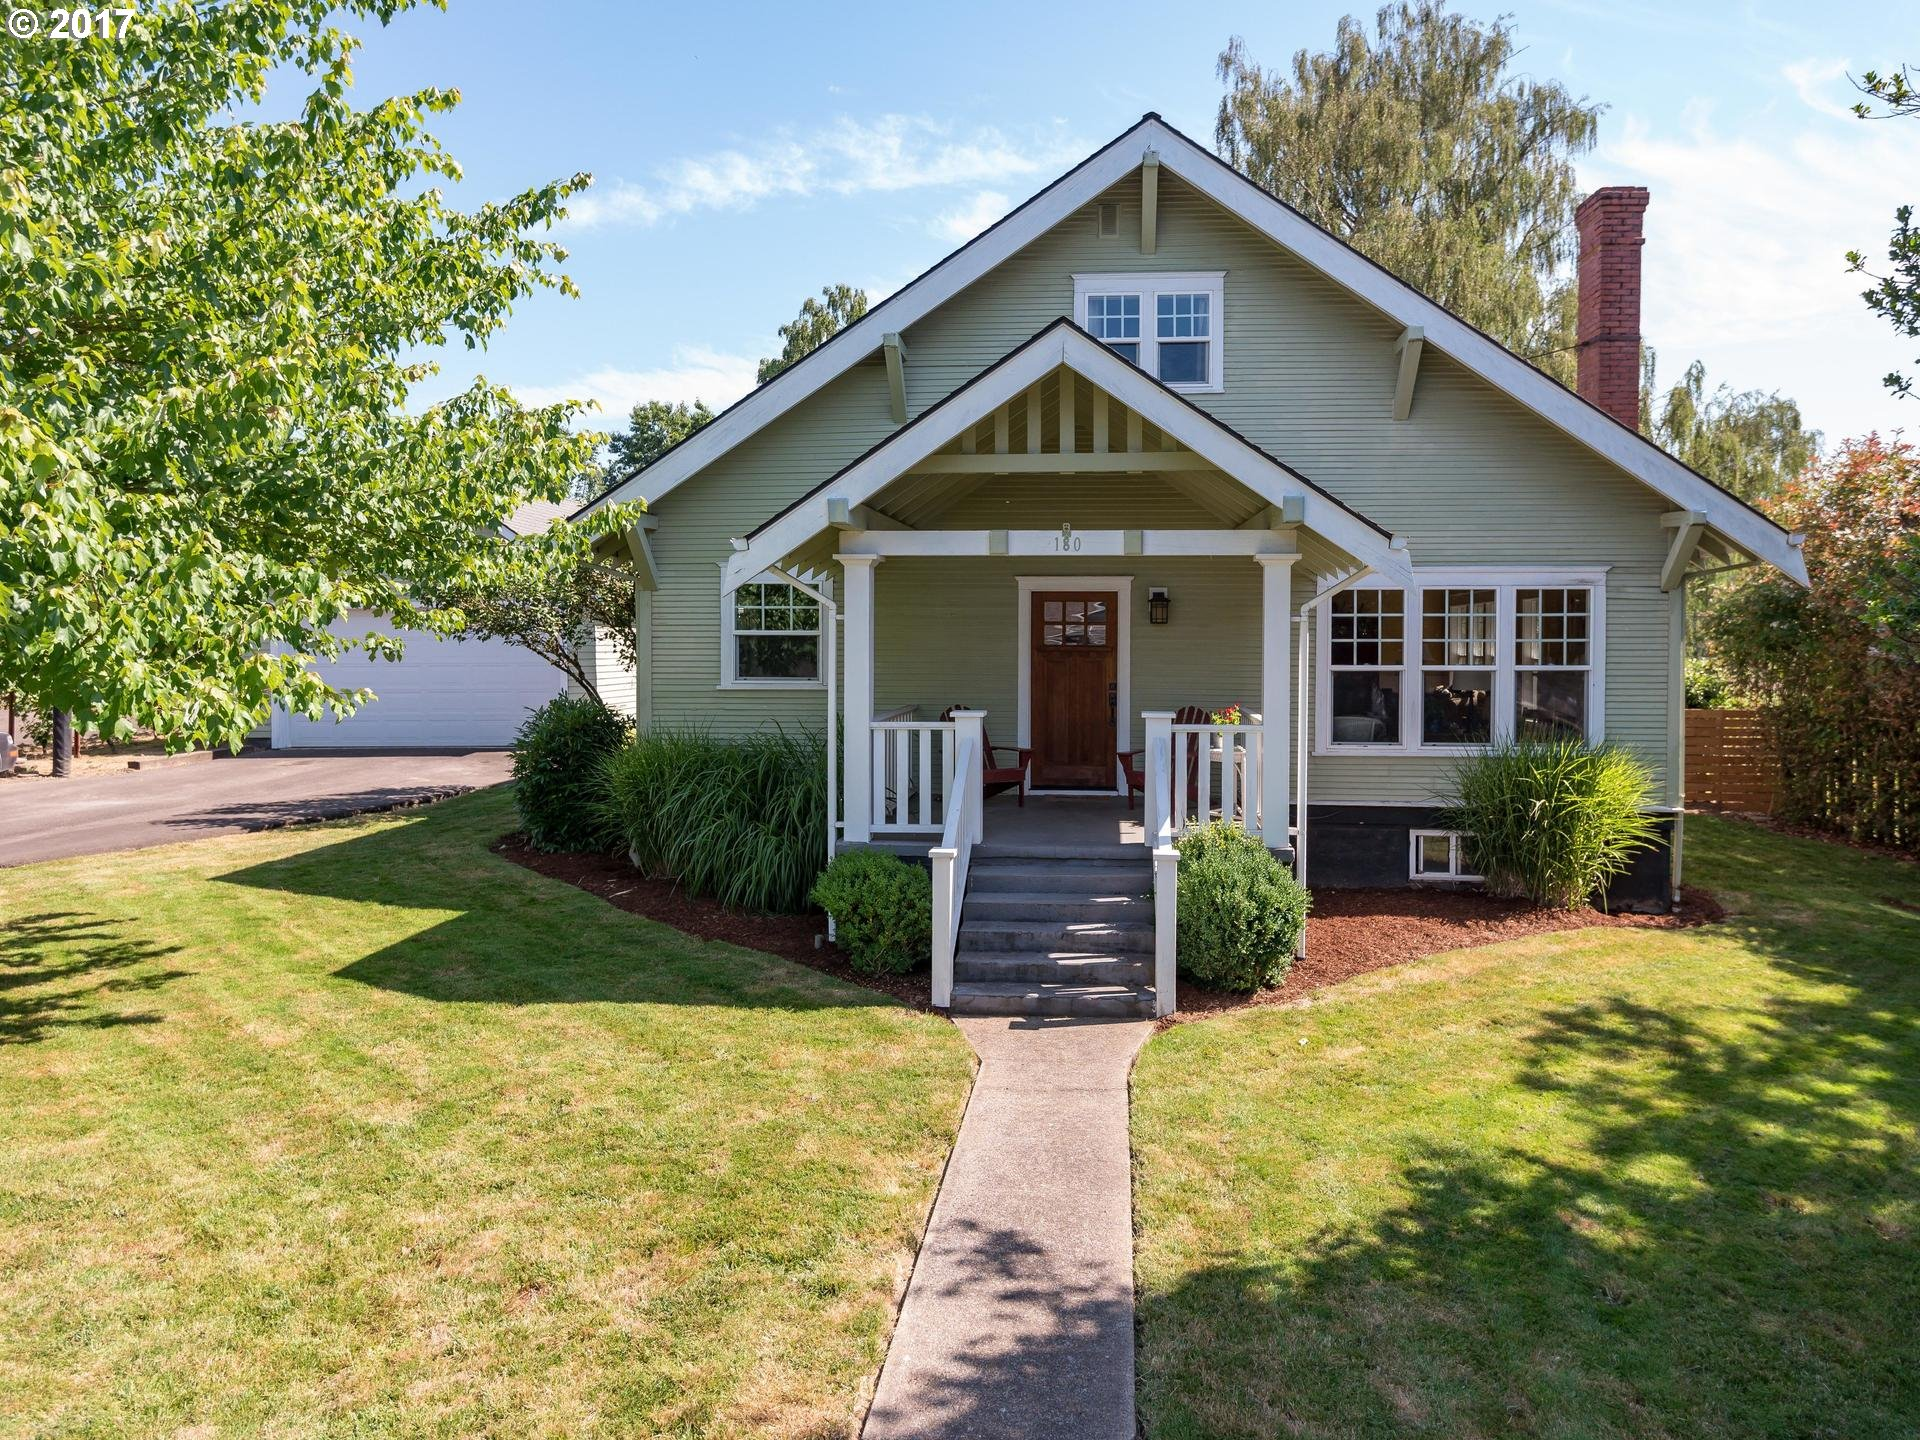 180 SW 7TH ST, Dundee, OR 97115